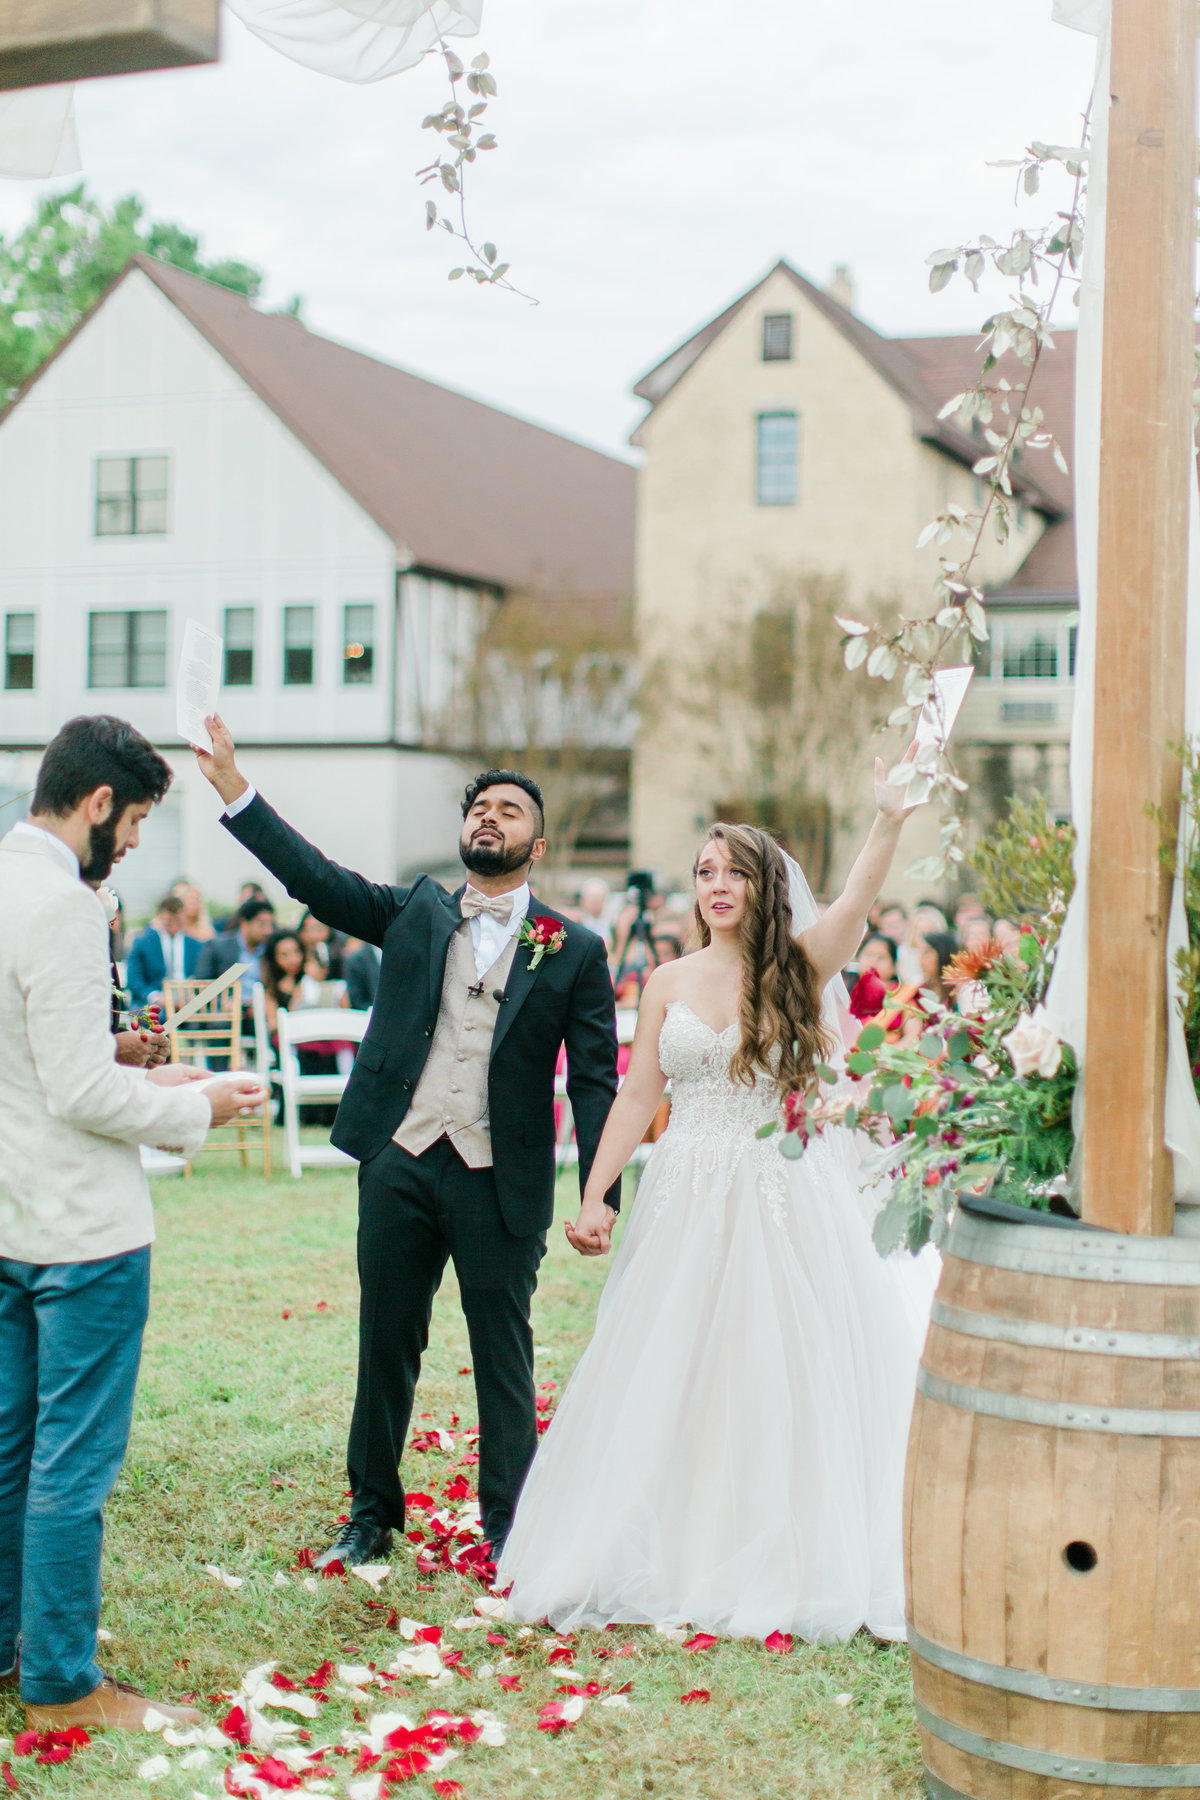 Williamsburg_Winery_Fall_Wedding_Virginia_DC_Photographer_Angelika_Johns_Photography-0040